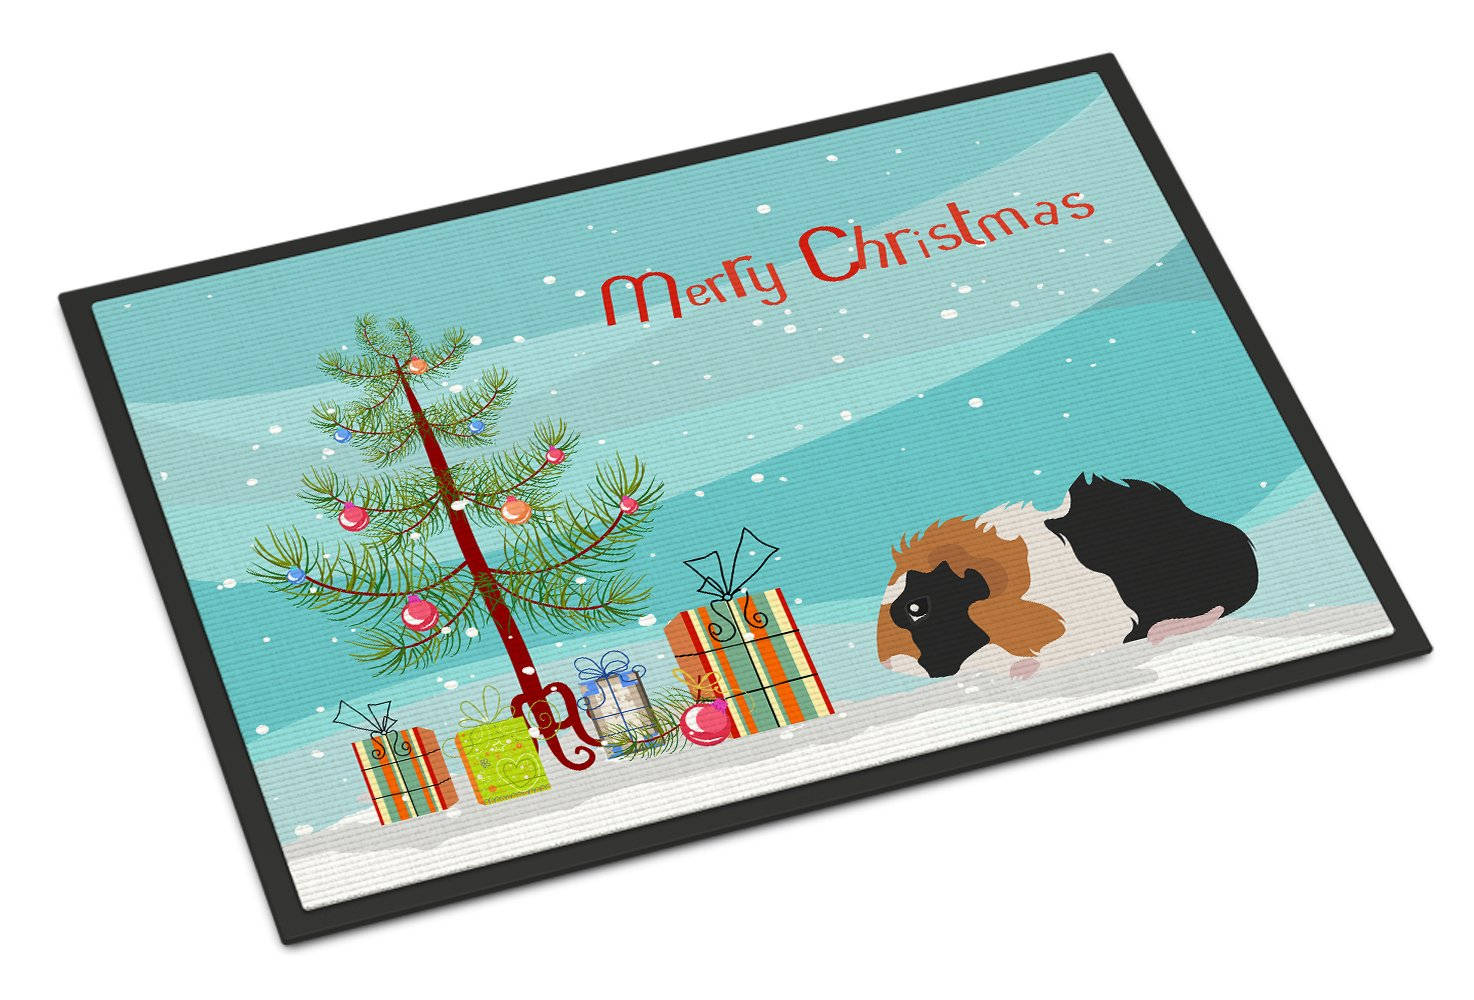 Abyssinian Guinea Pig Merry Christmas Indoor or Outdoor Mat 24x36 CK4438JMAT by Caroline's Treasures